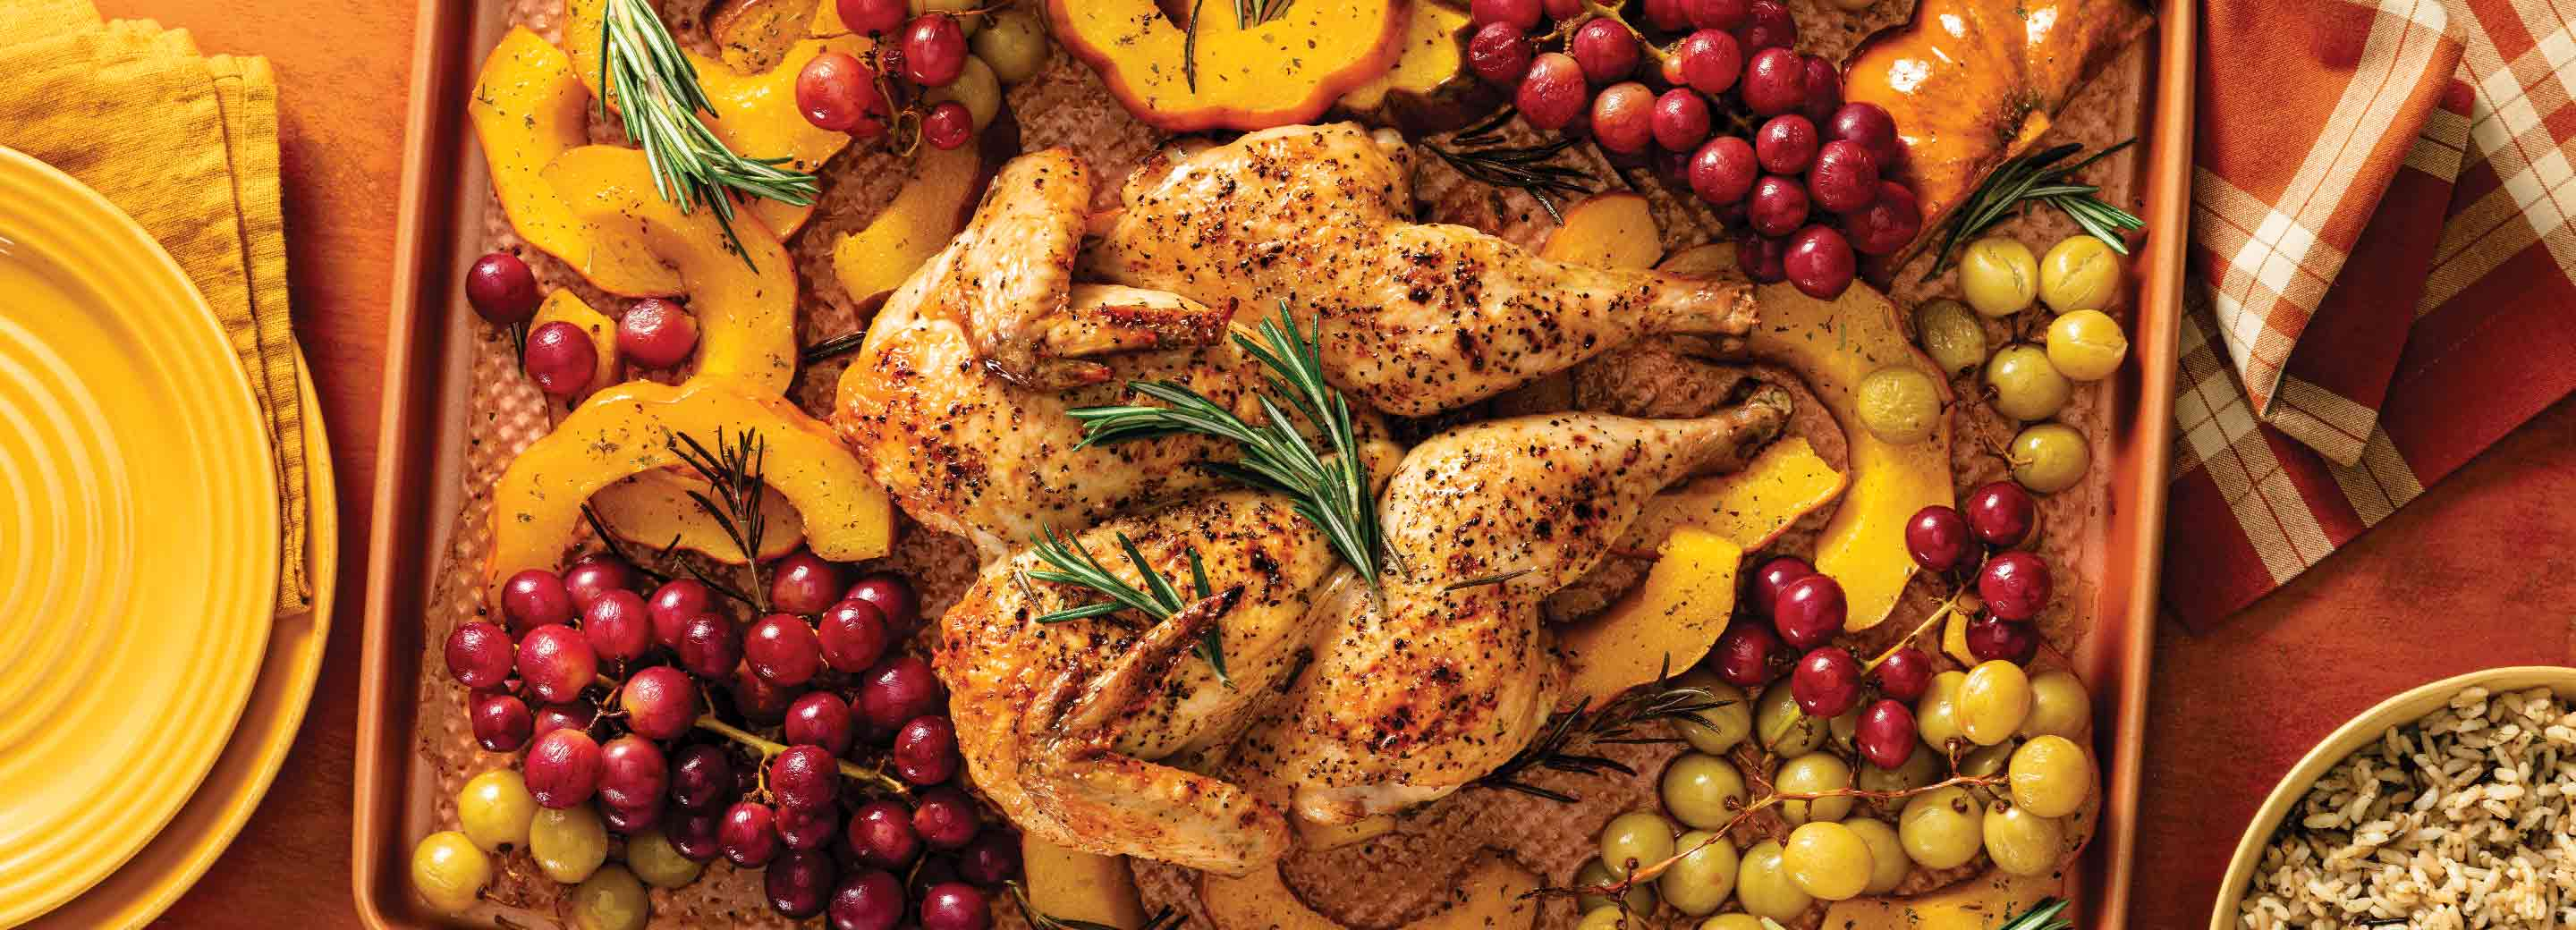 Spatchcock Chicken with Roasted Grapes and Squash